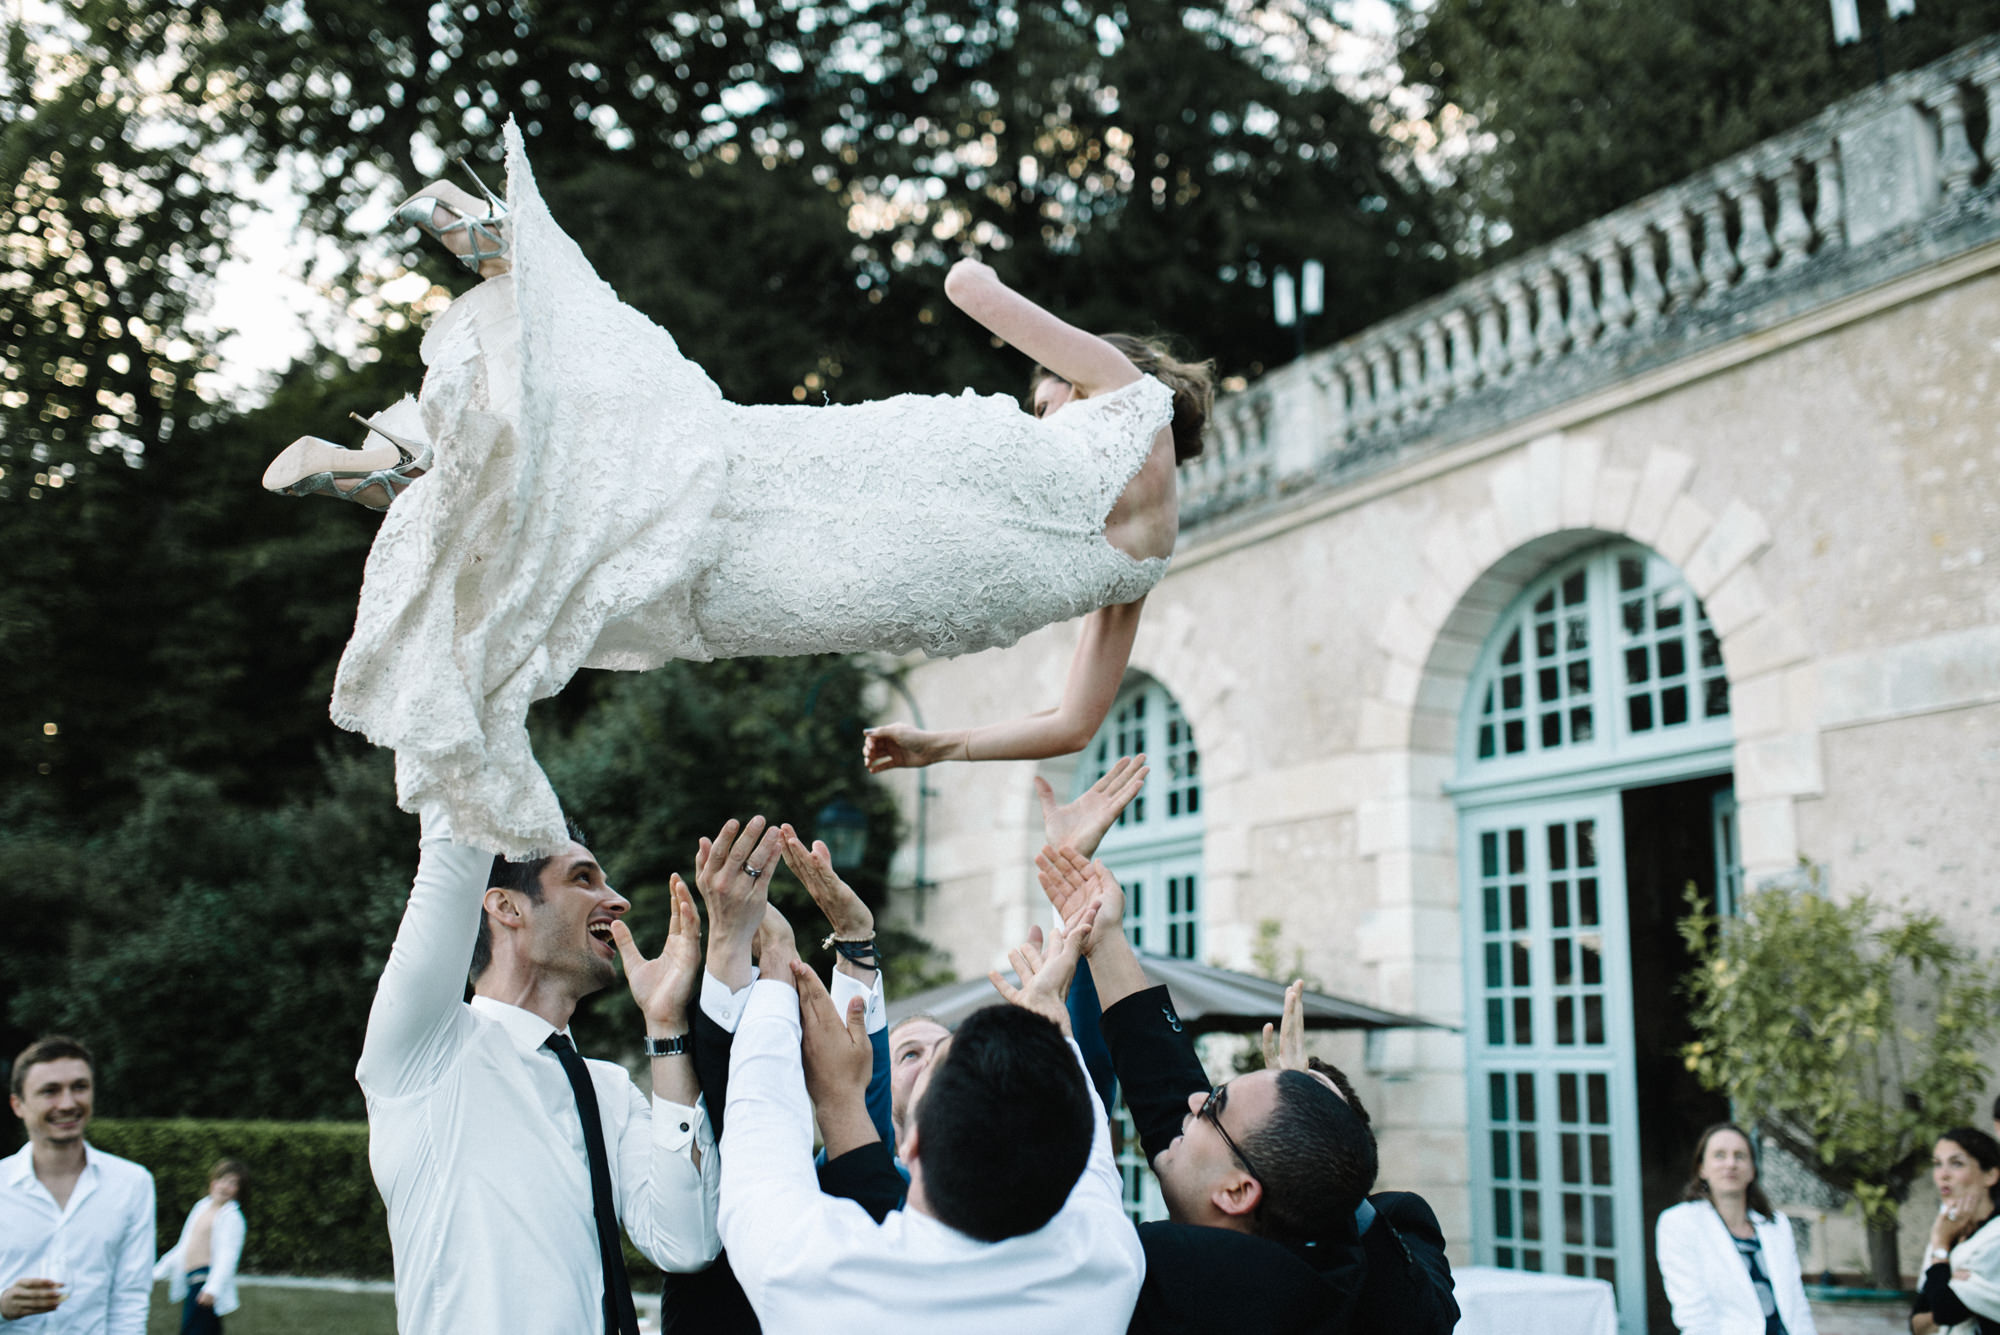 willybroussephotography-wedding-loirevalley-bidaudieres-laura-mathieu-109